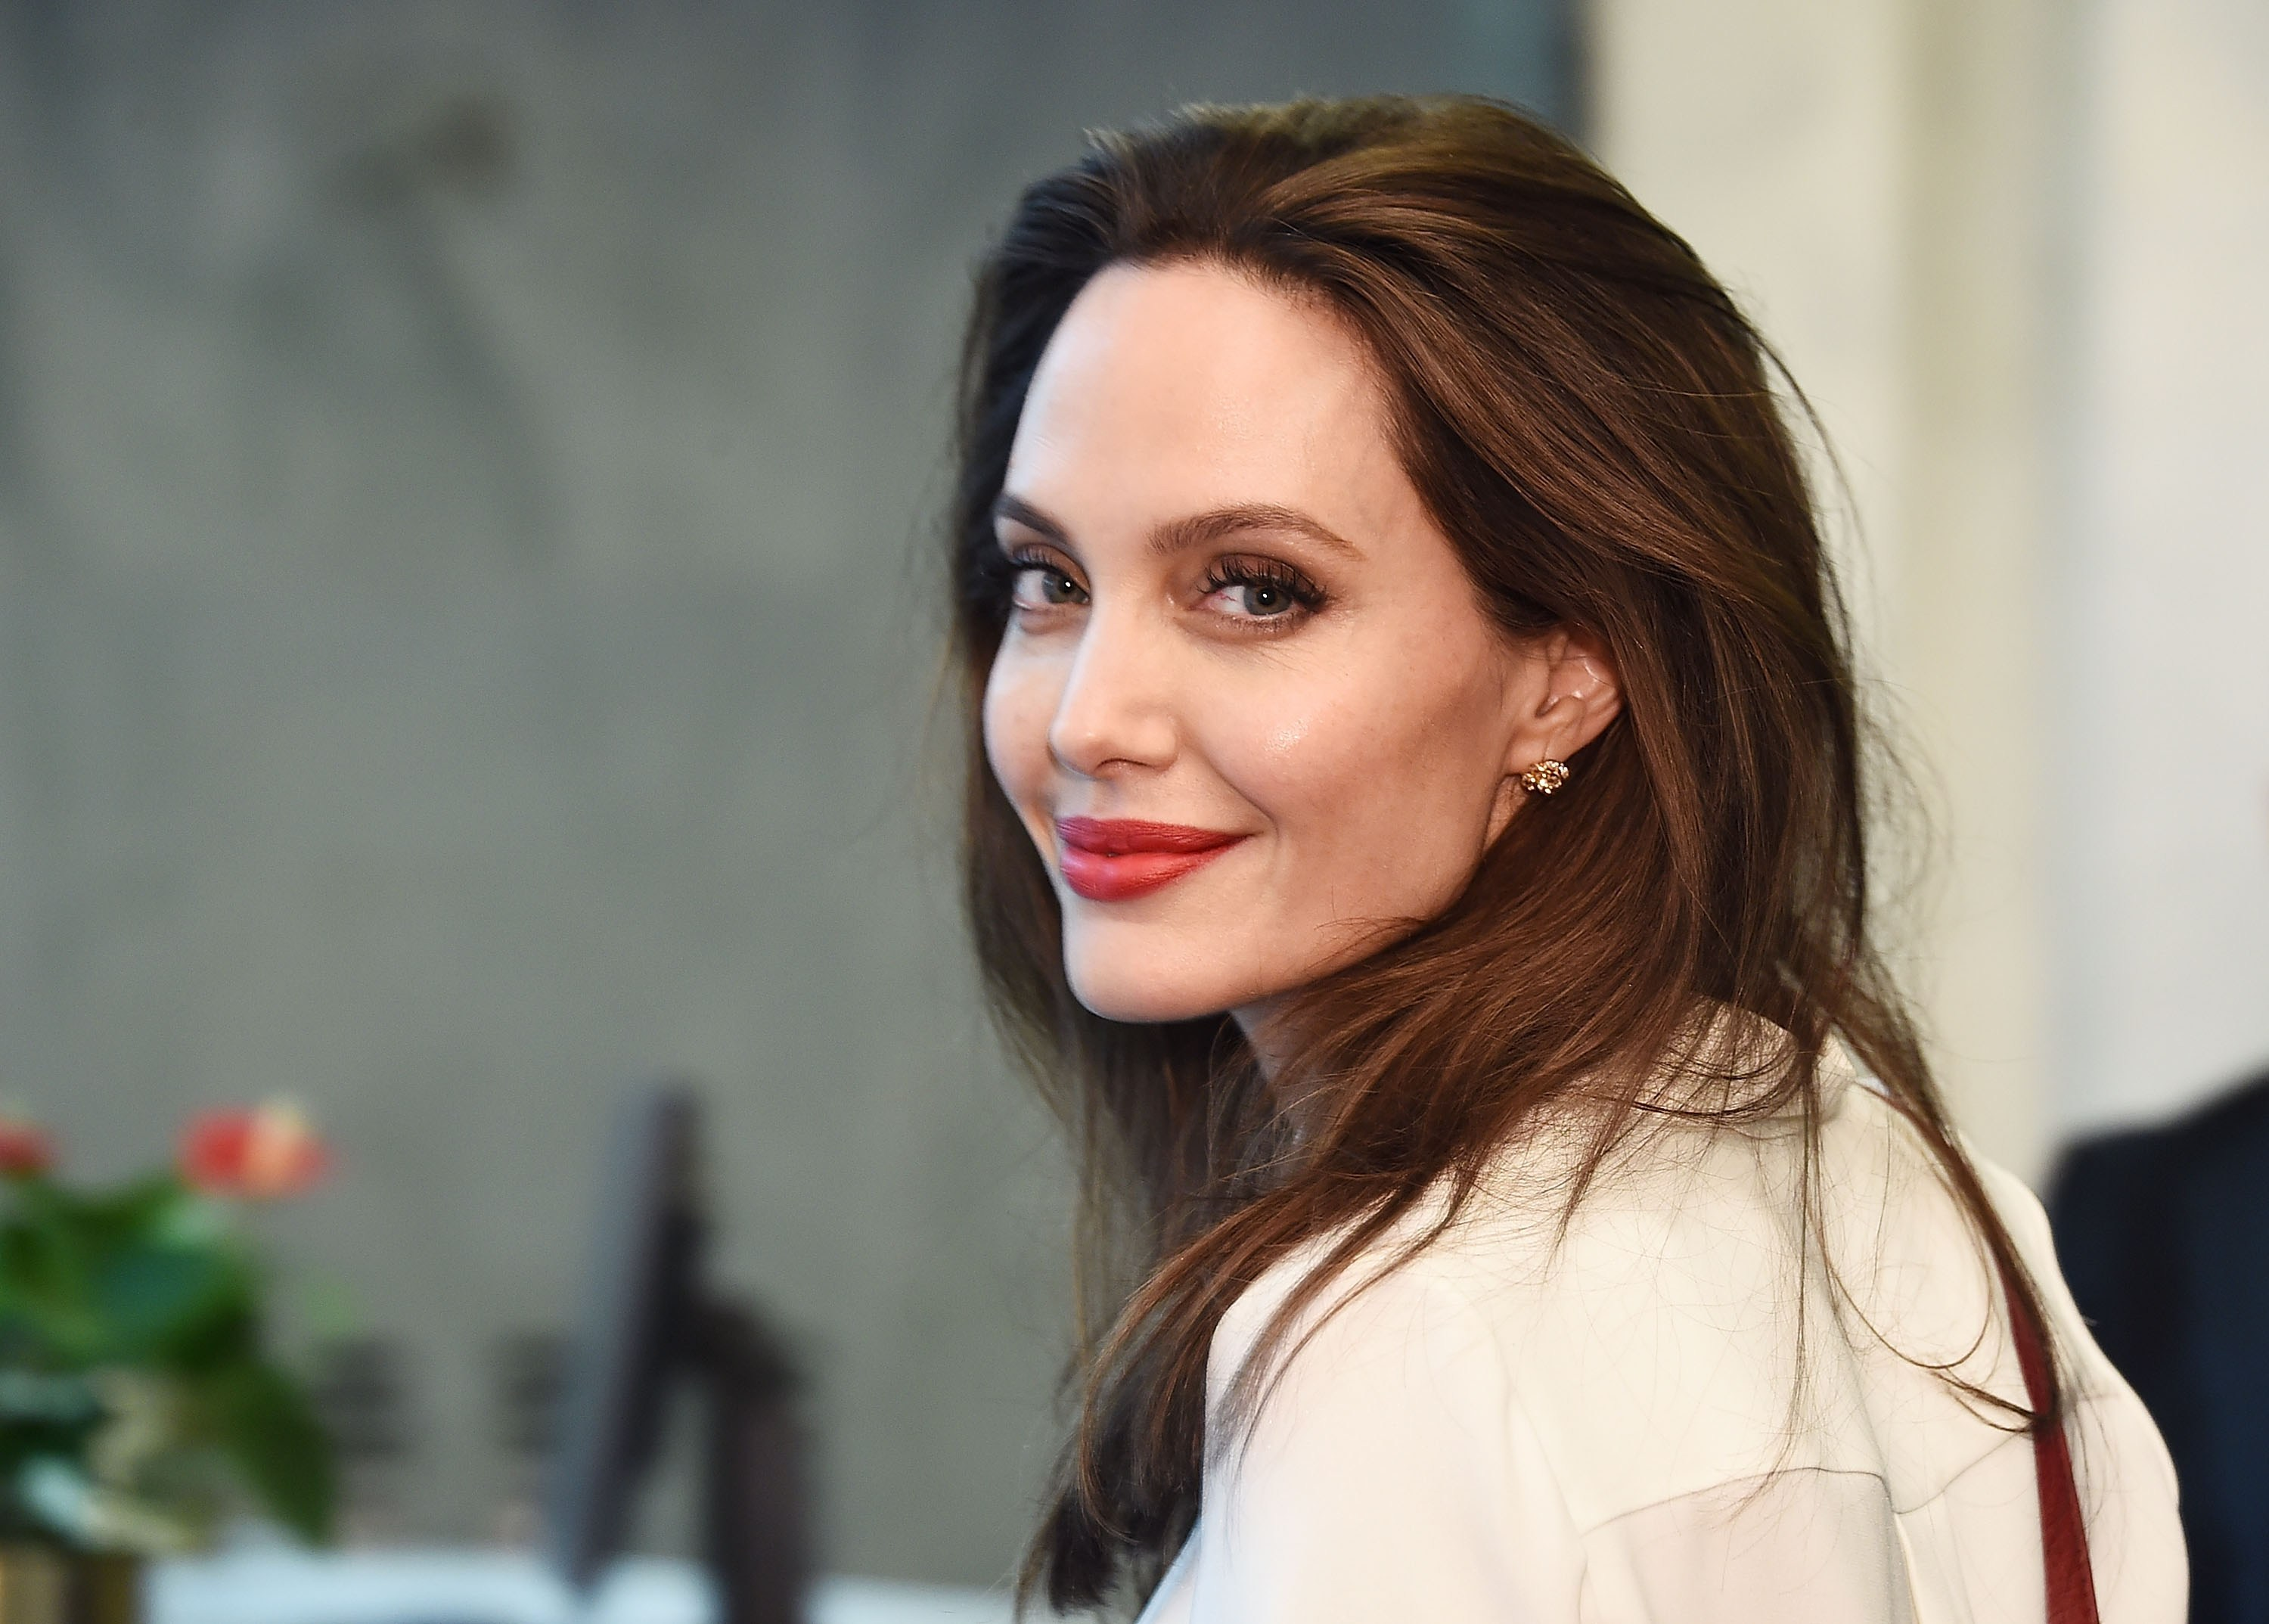 Angelina Jolie says the world is 'waking up' amid Black Lives Matter movement